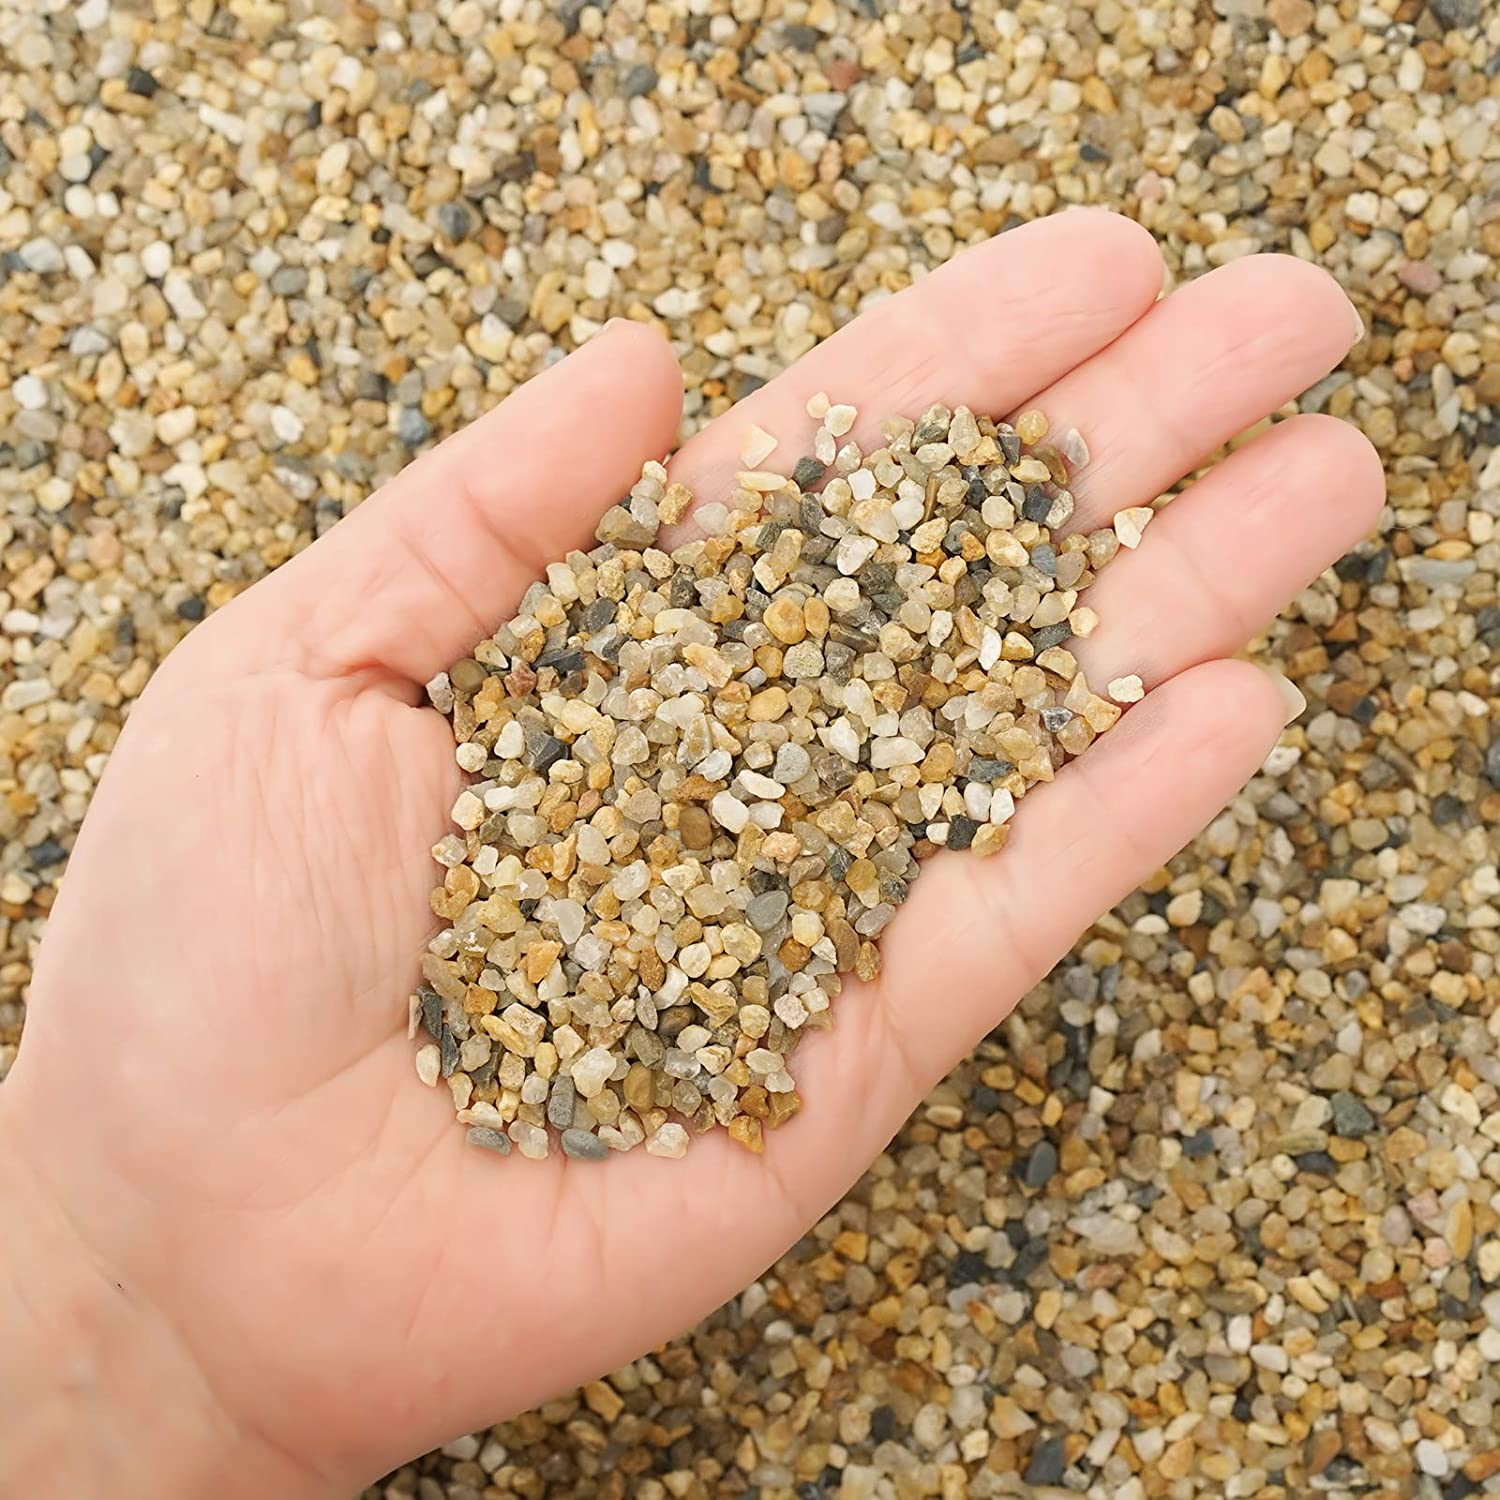 2.7 lb Coarse Sand Stone - Succulents and Cactus Bonsai DIY Projects Rocks, Decorative Gravel for Plants and Vases Fillers,Terrarium, Fairy Gardening, Natural Stone Top Dressing for Potted Plants.